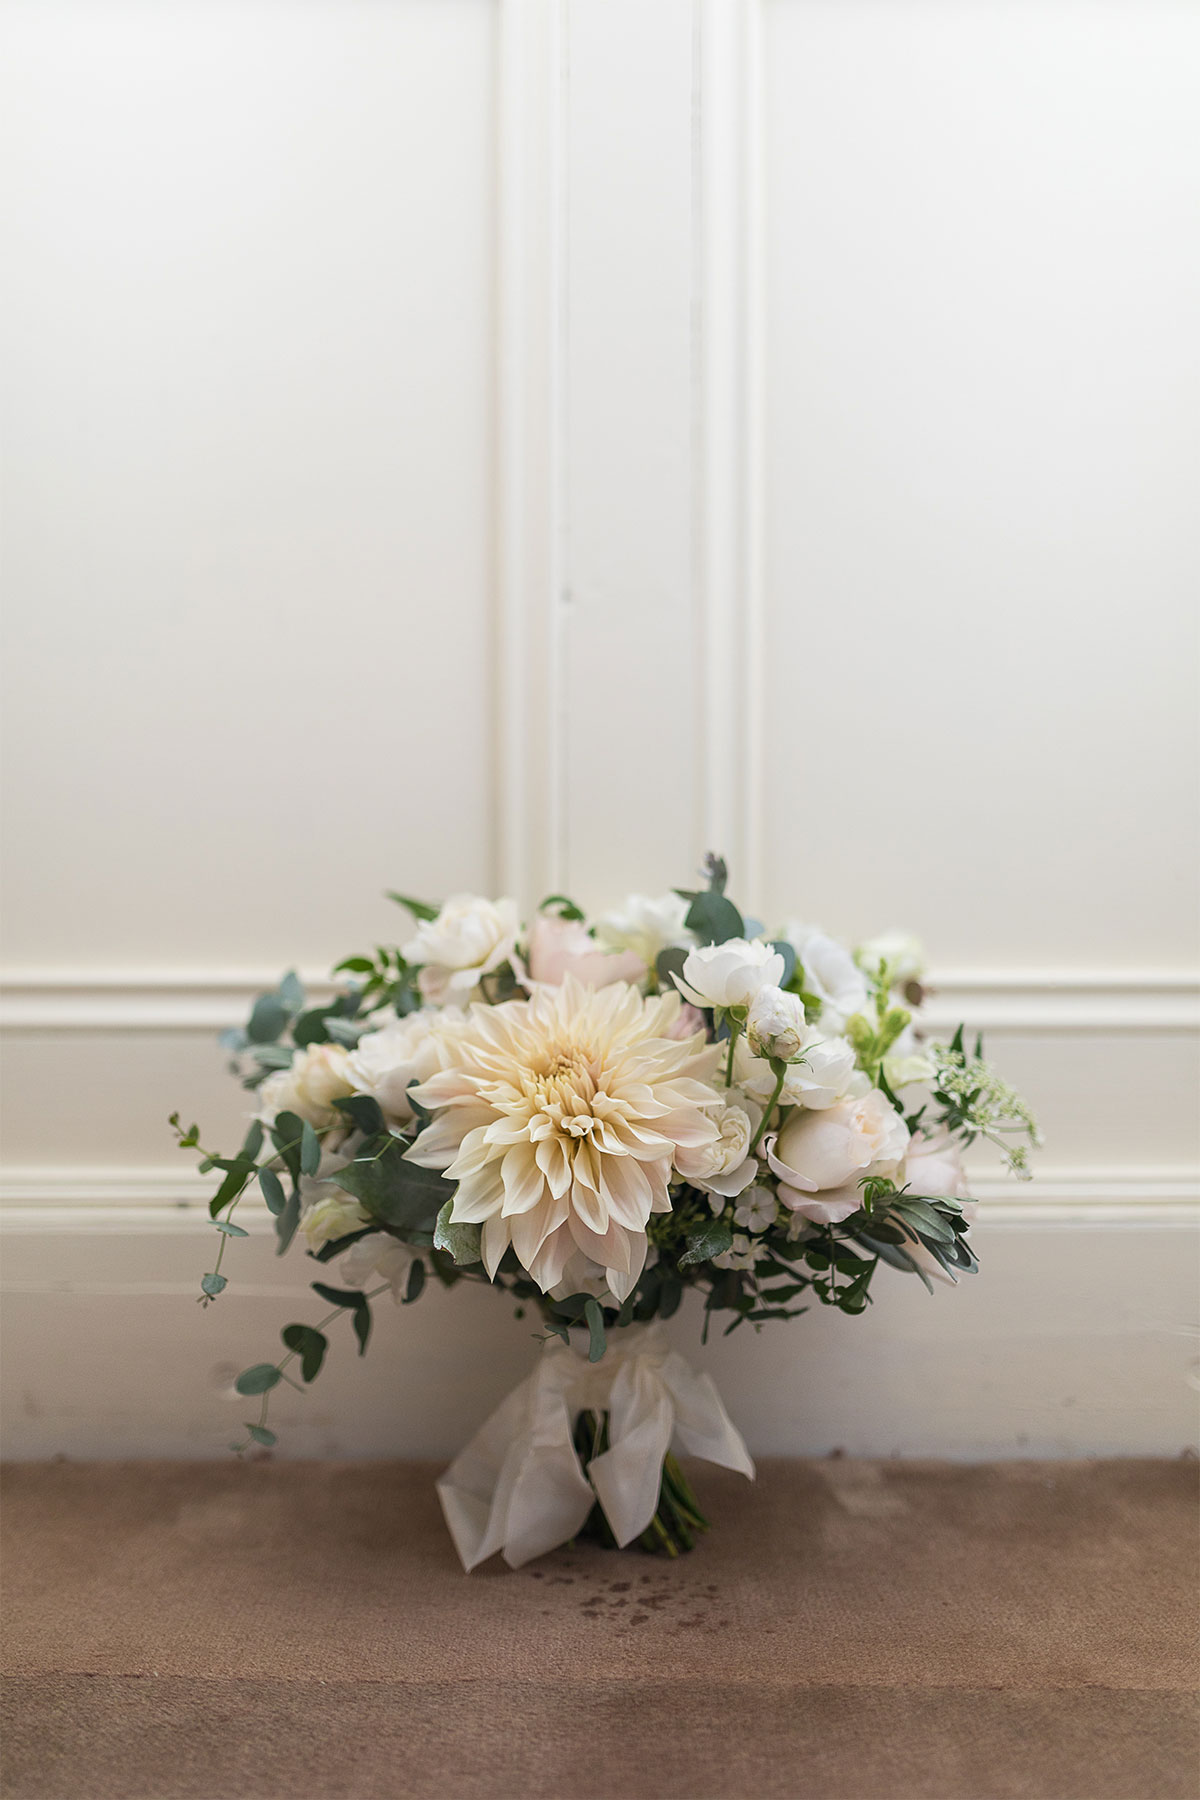 wedding bouquet in ivory and white